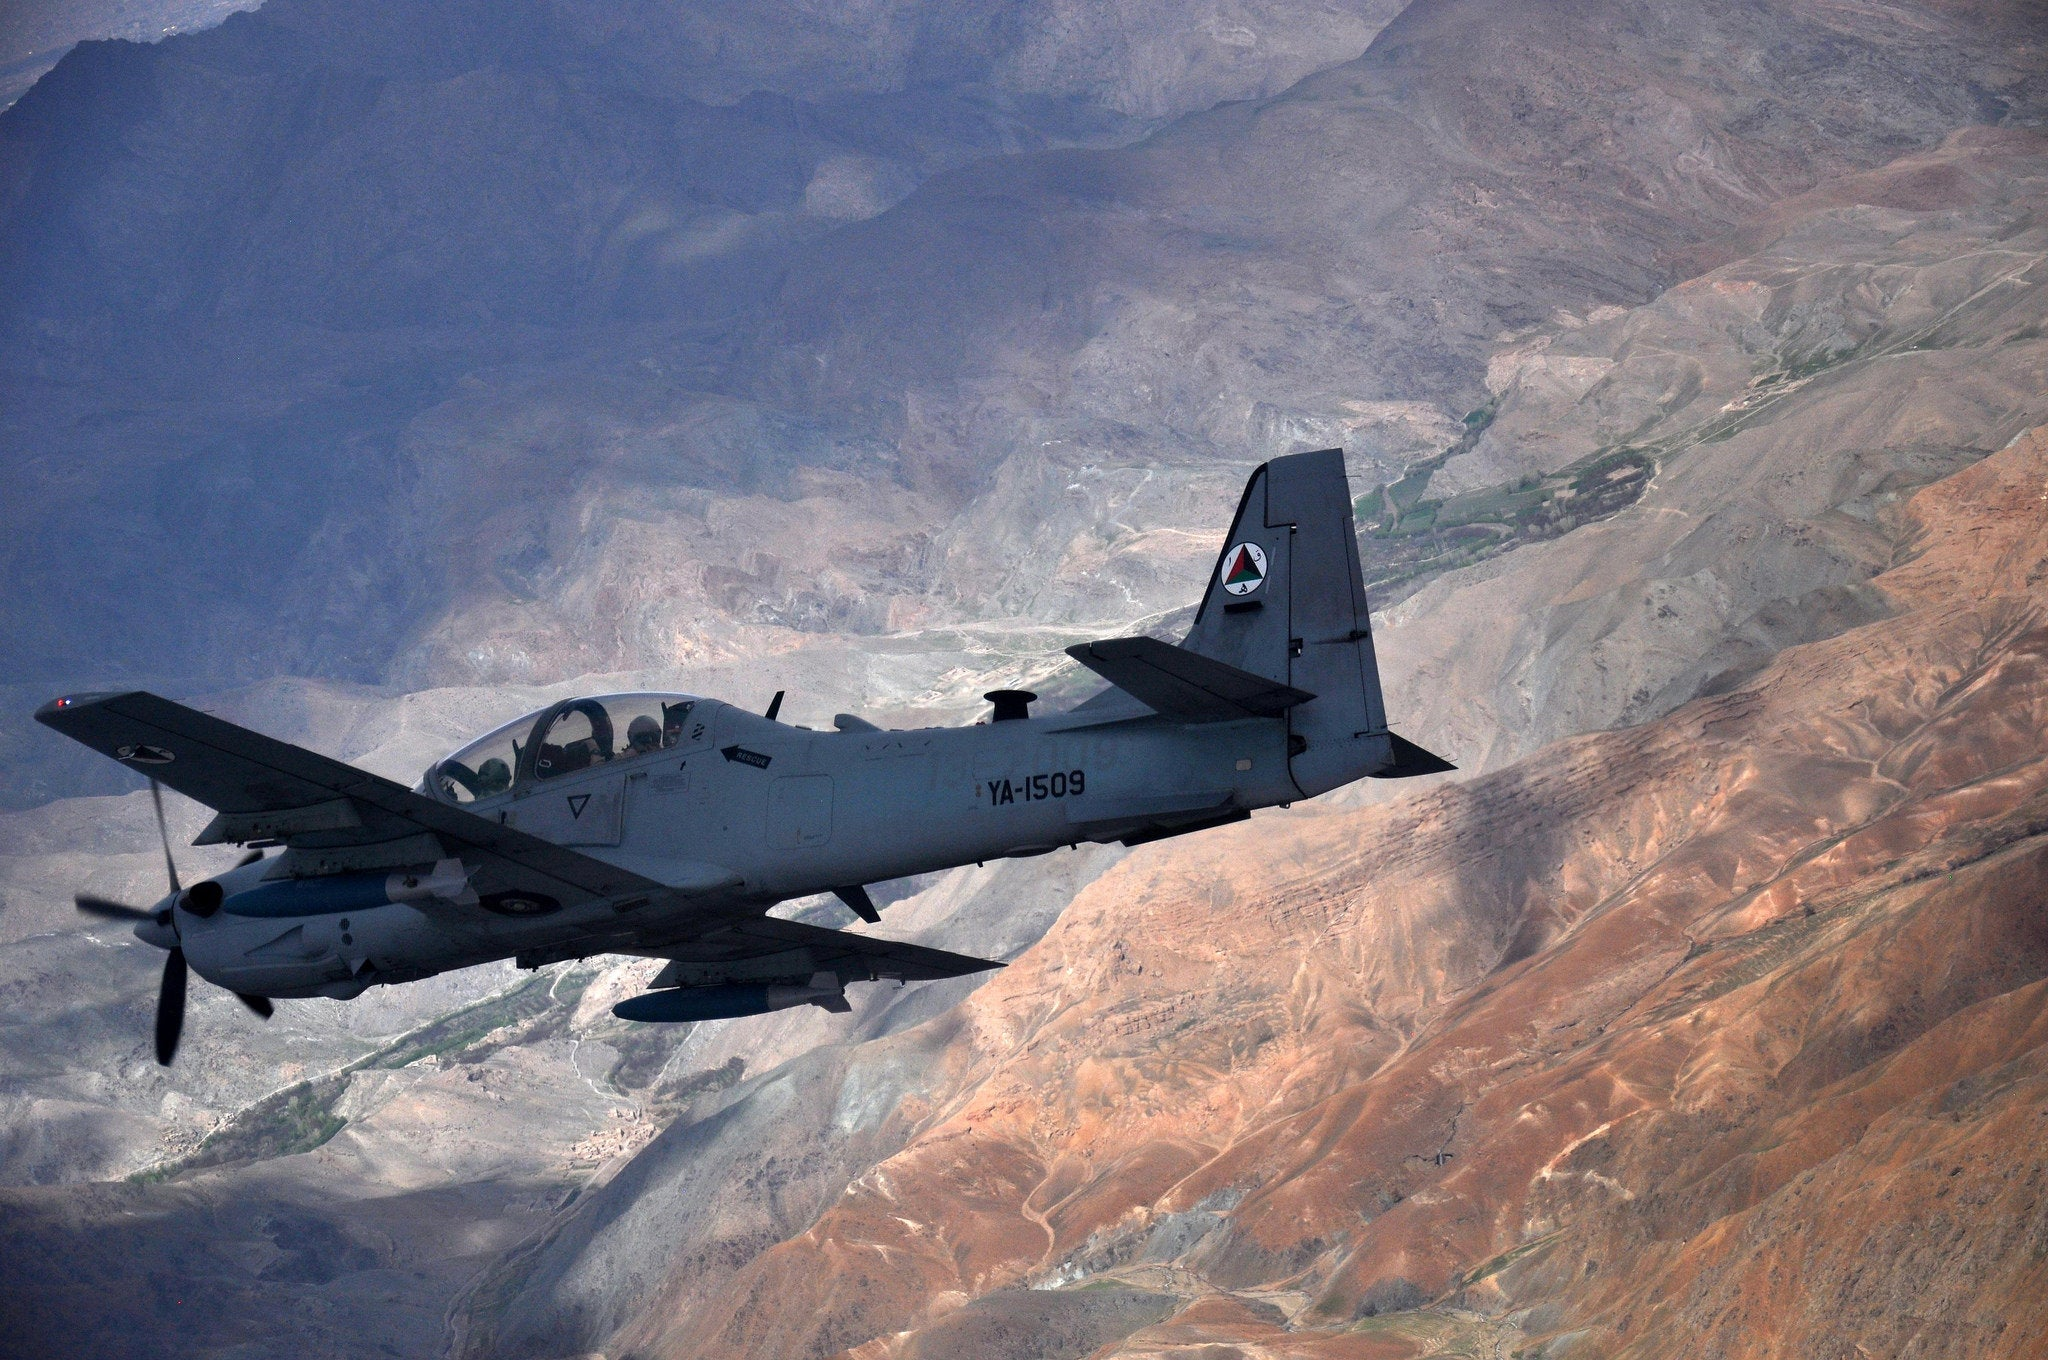 The Marines want its own cheap light attack aircraft